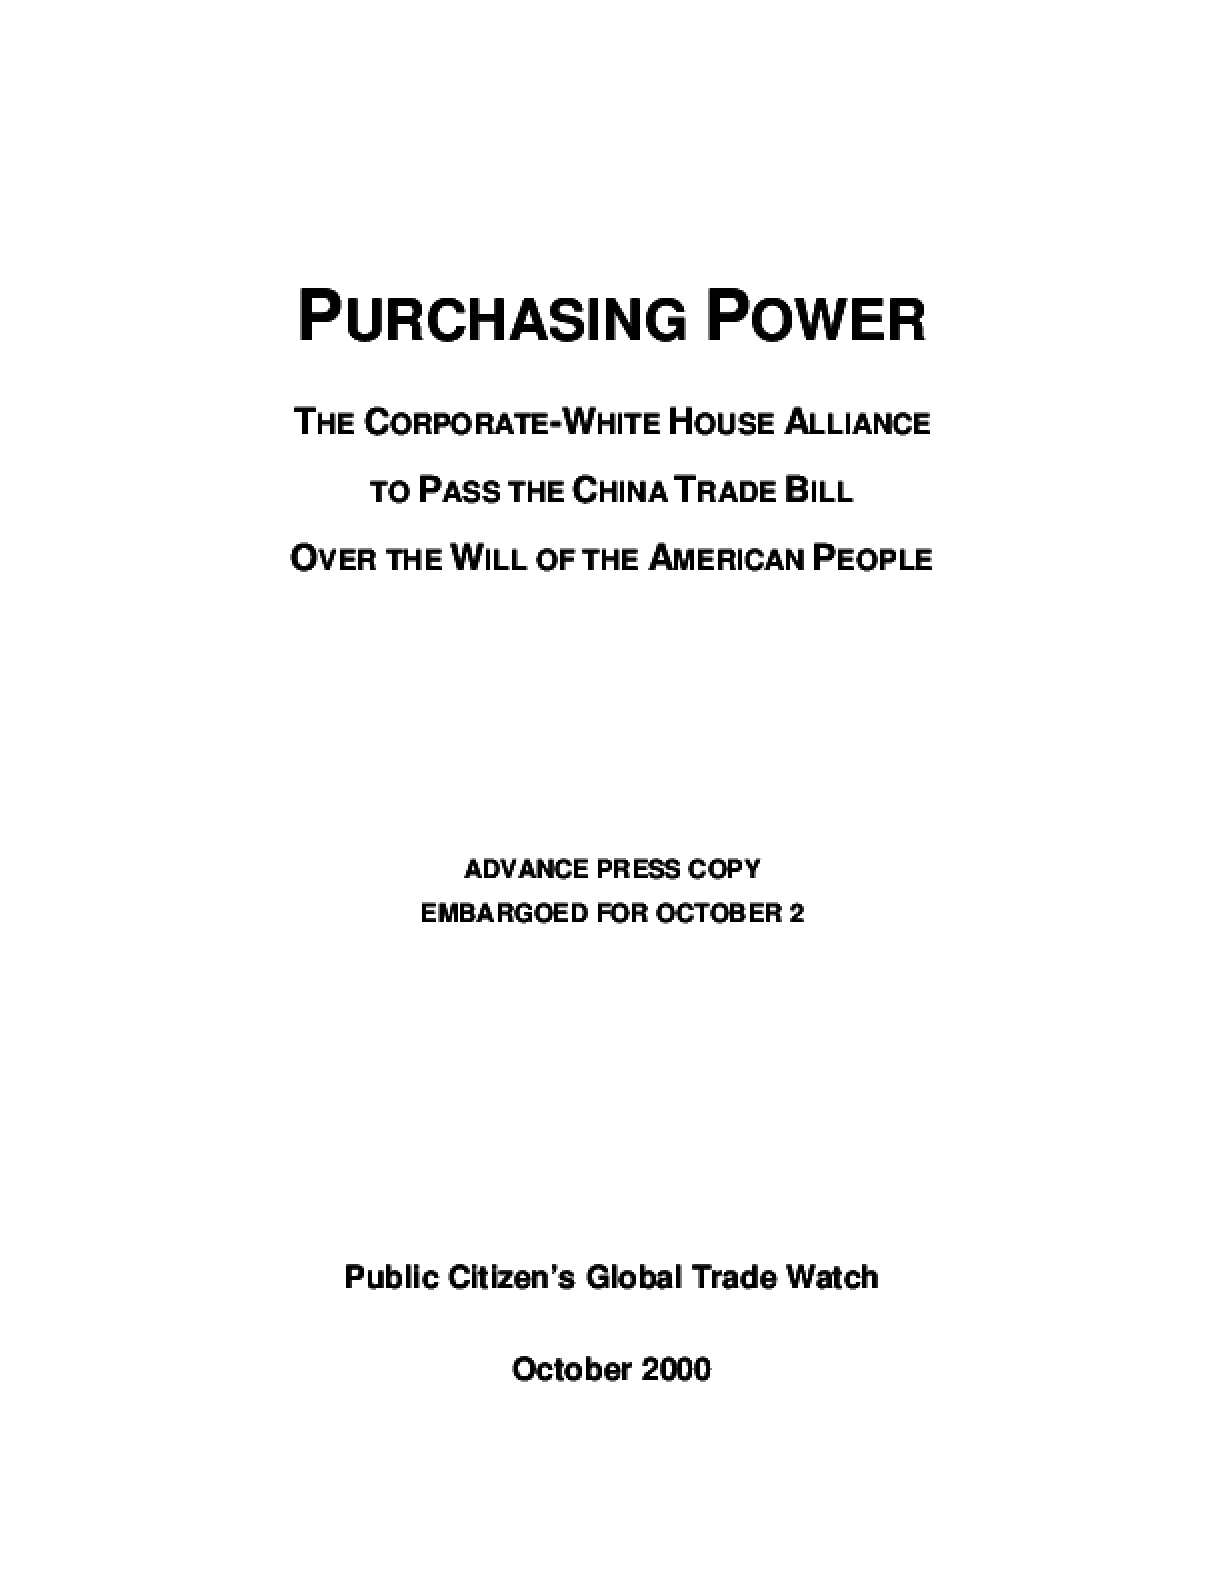 Purchasing Power: The Corporate-White House Alliance to Pass the China Trade Bill Over the Will of the American People